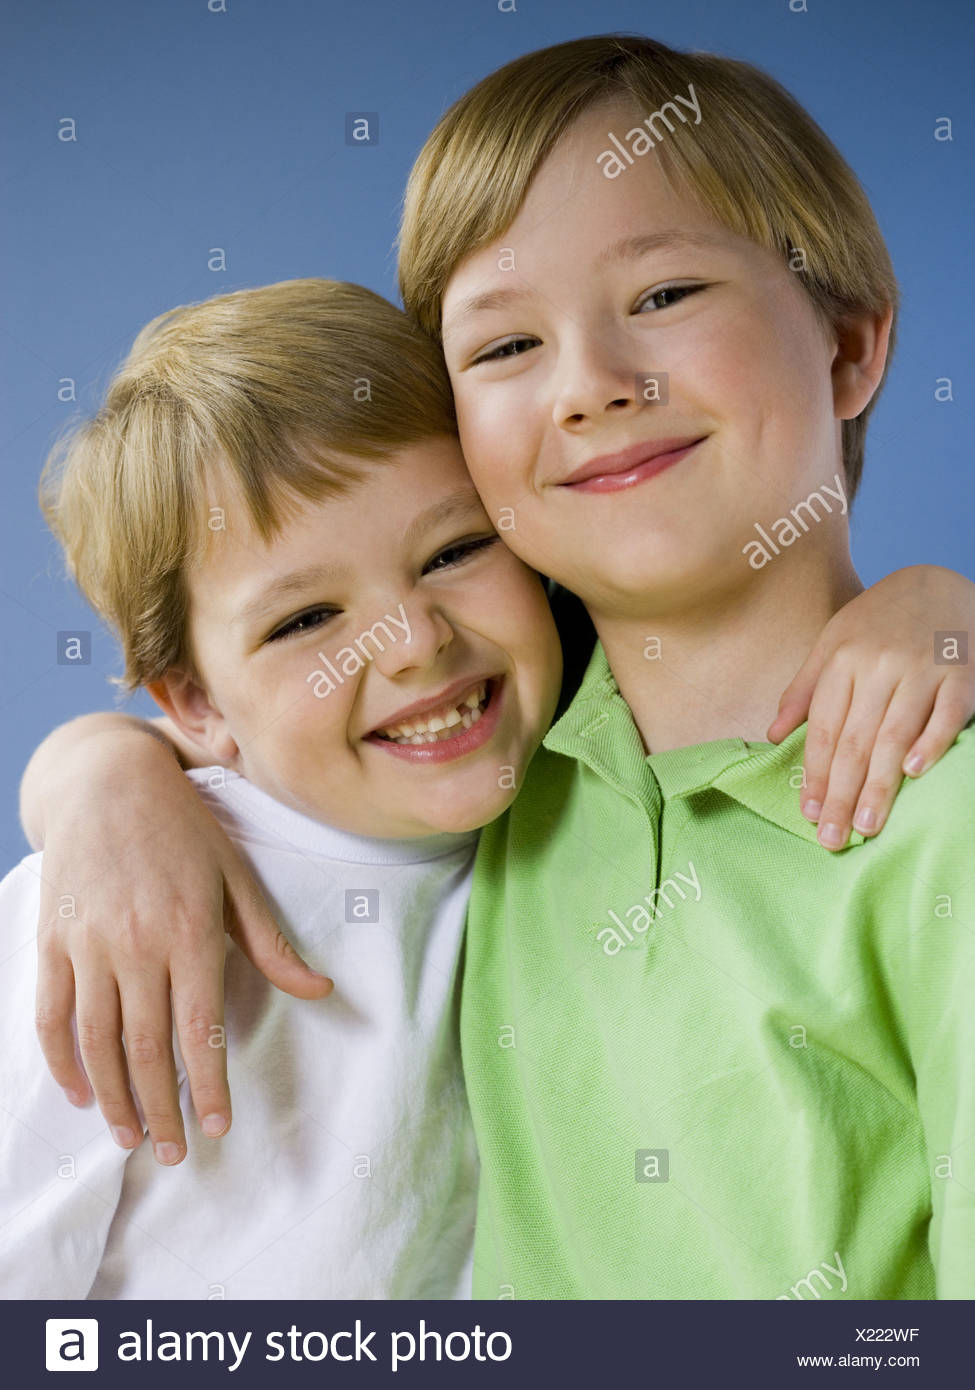 Portrait of two boys smiling - Stock Image